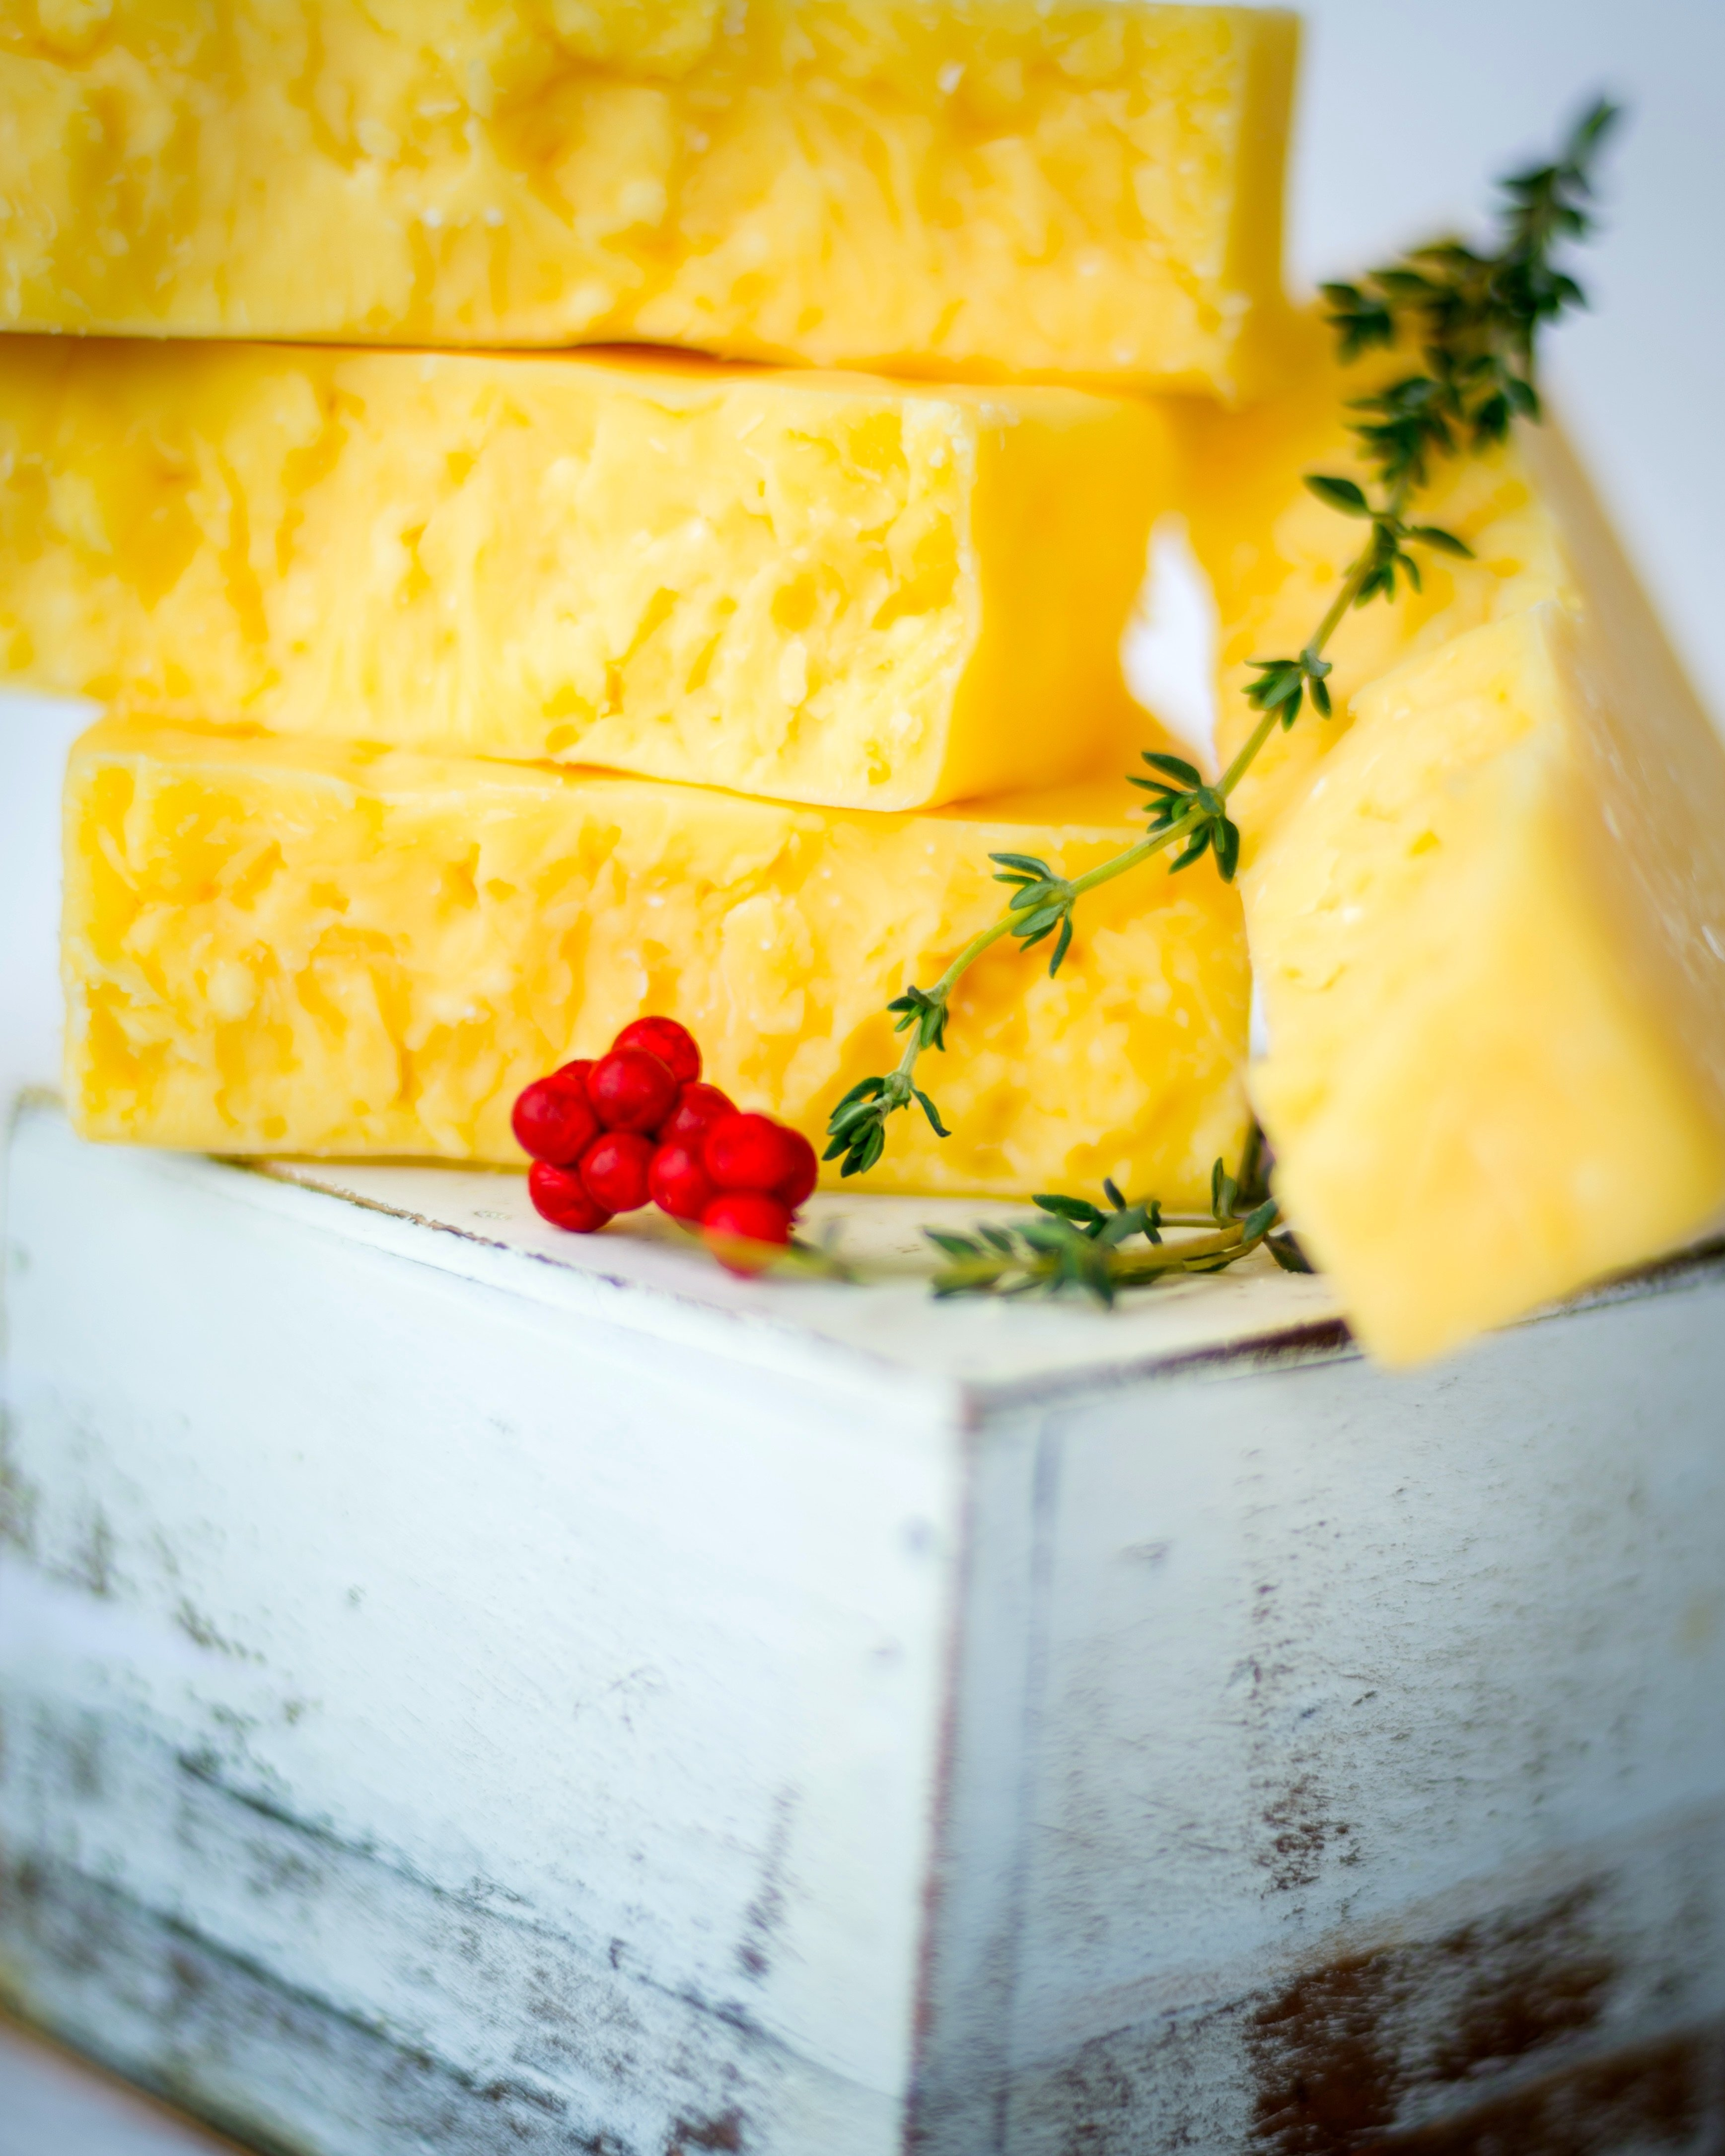 Bright Meadow Sharp Cheddar Cheese